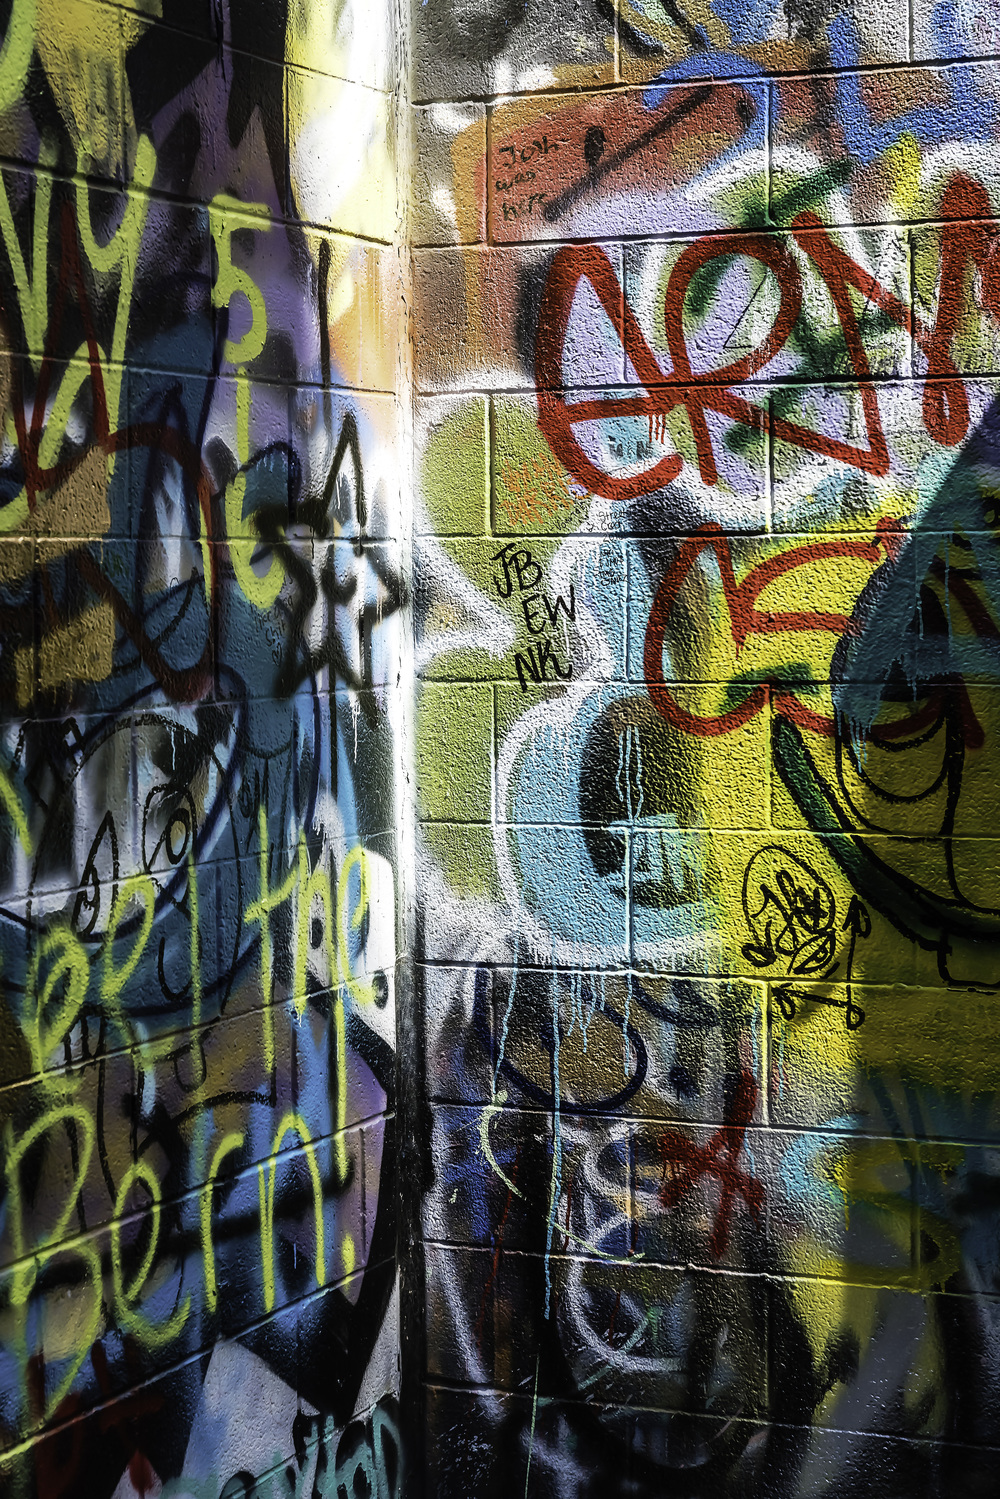 Graffiti behind the Michigan Theatre in an alley of some note in Ann Arbor. Sun and shade.